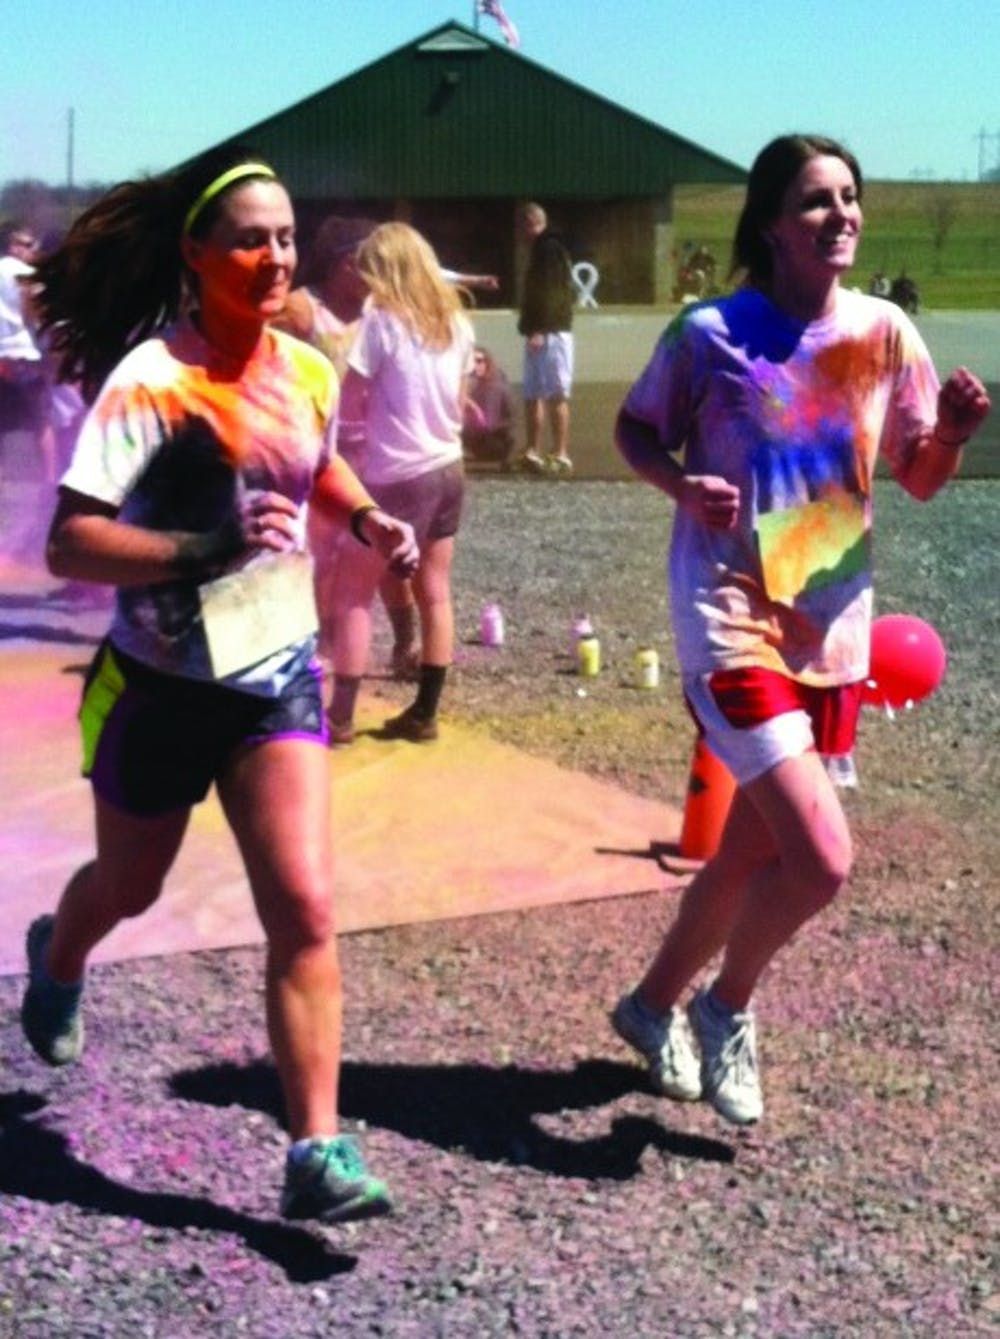 Colors of Hope 5K kicks off this Sunday